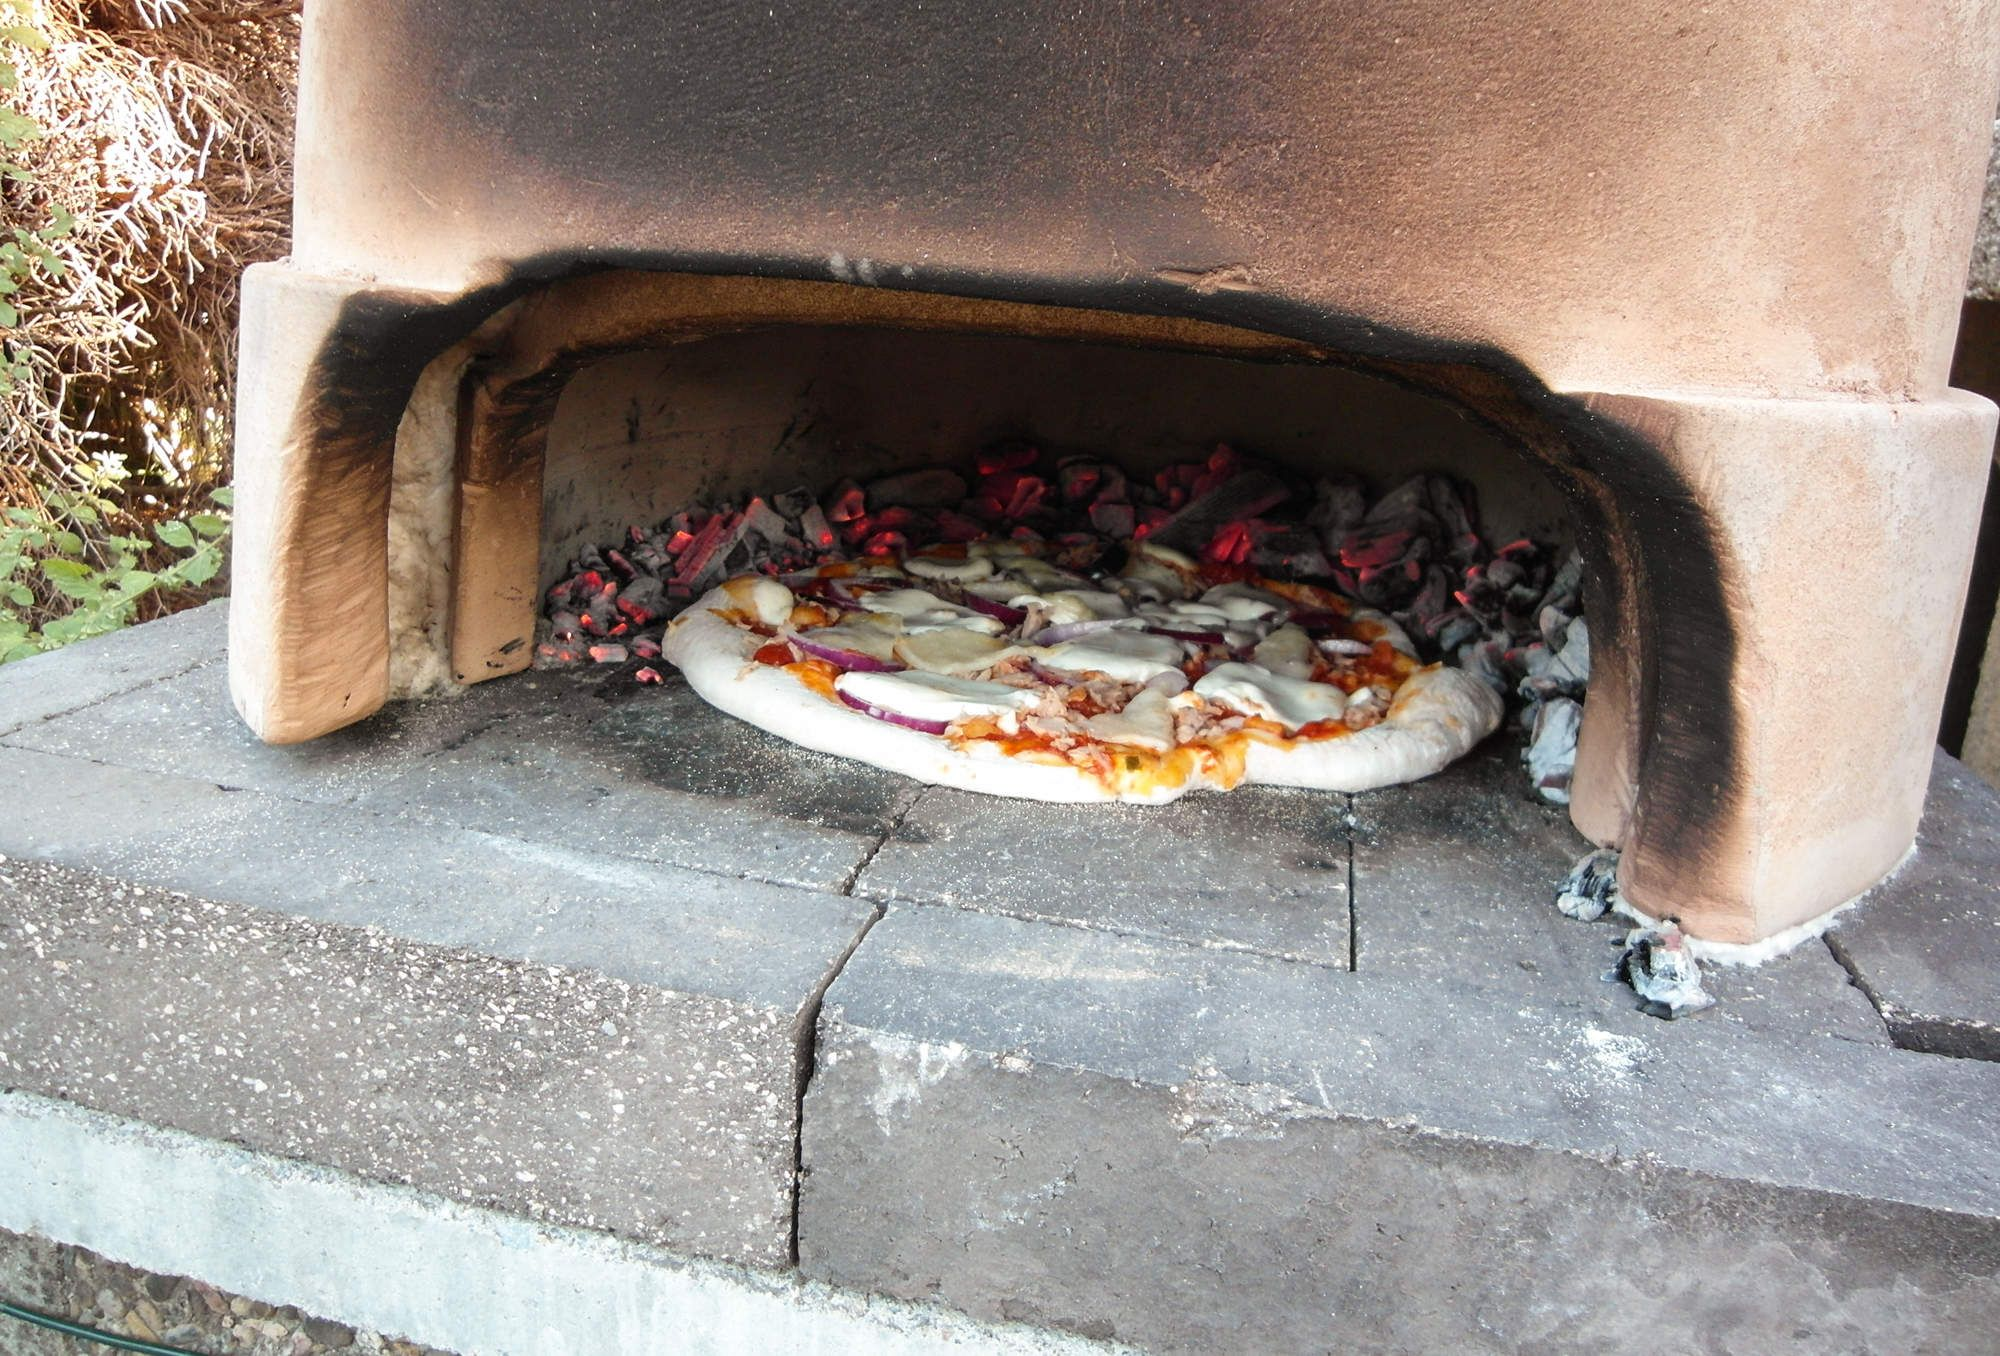 How To Make A Backyard Pizza Oven For Under $200 | Diy ...